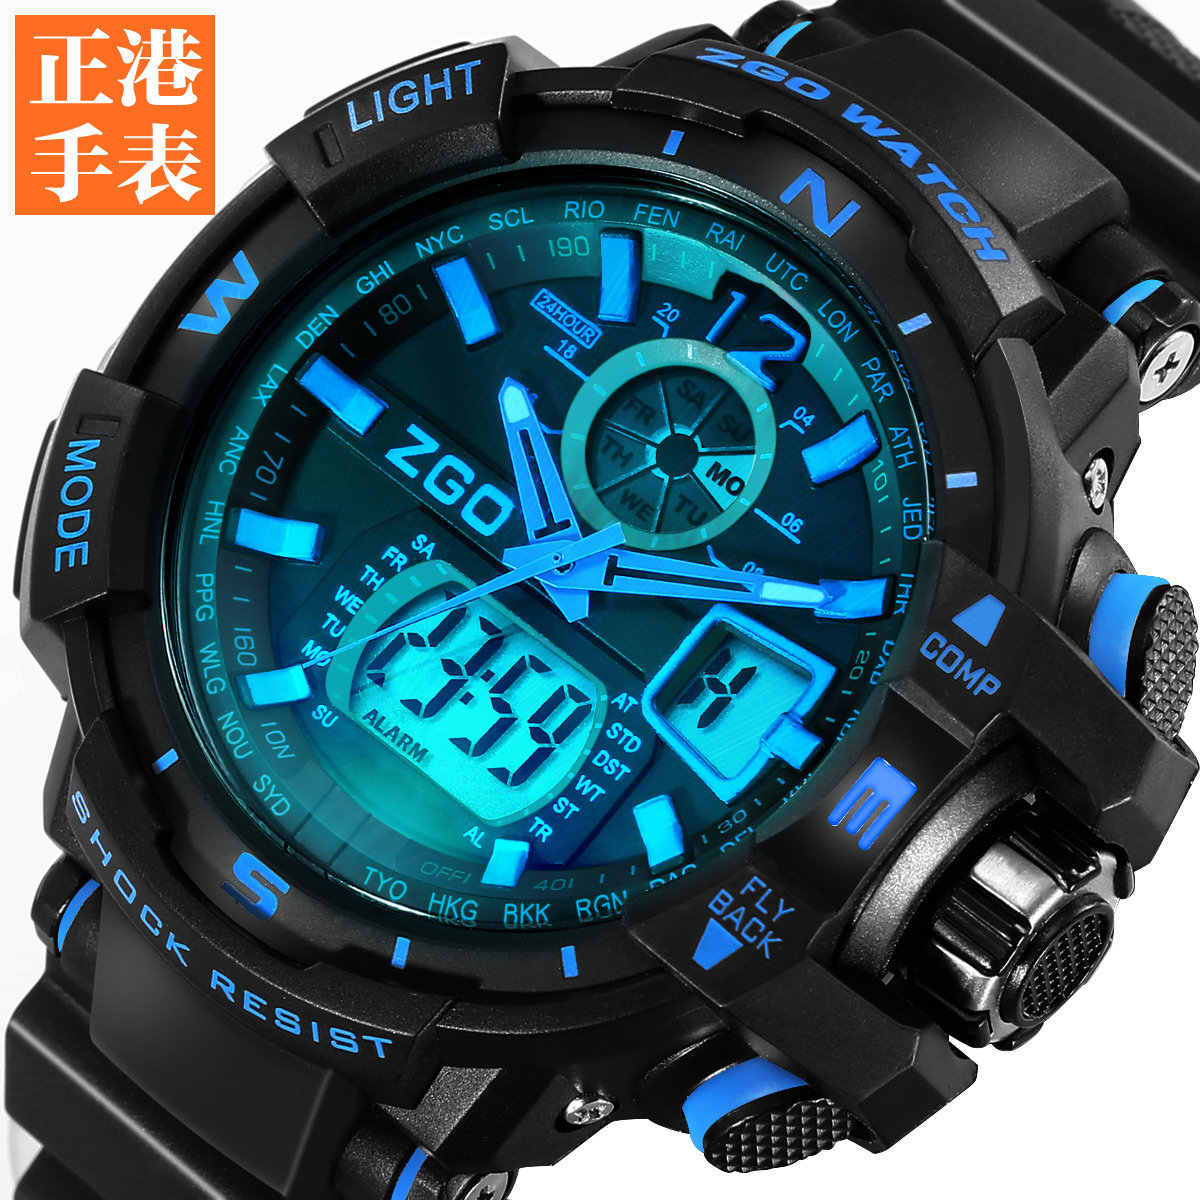 G sport shock watches for men forecast to wear in autumn in 2019